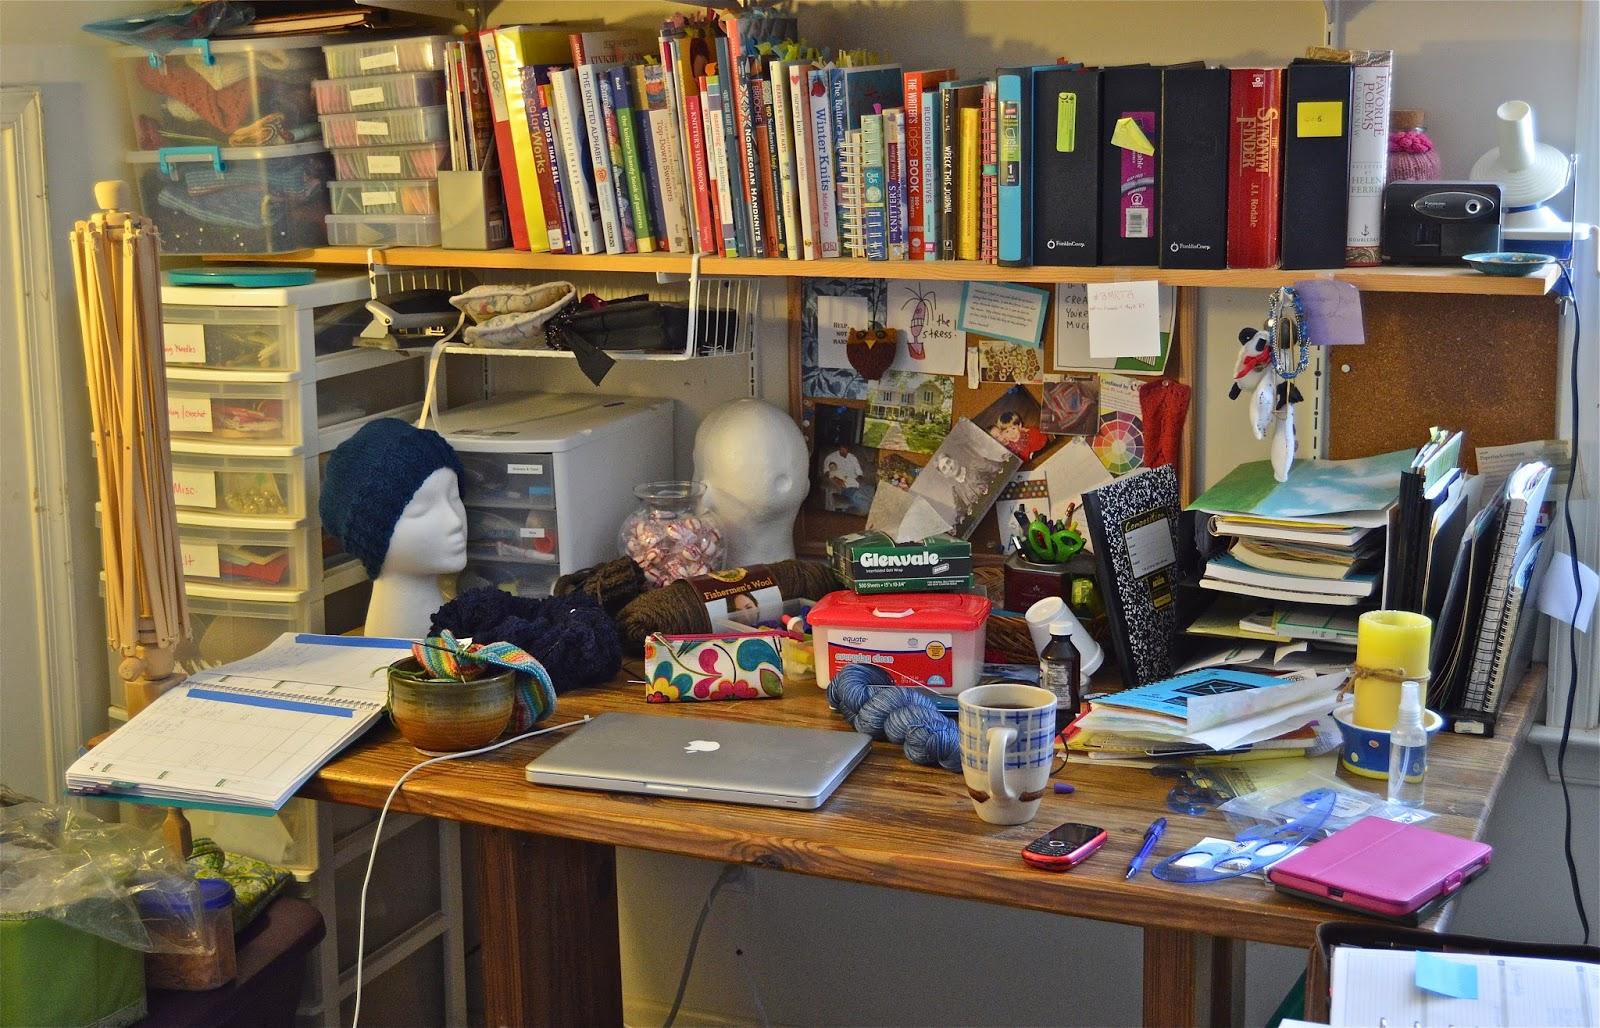 Knitting, art and planning projects spread all over my desk.